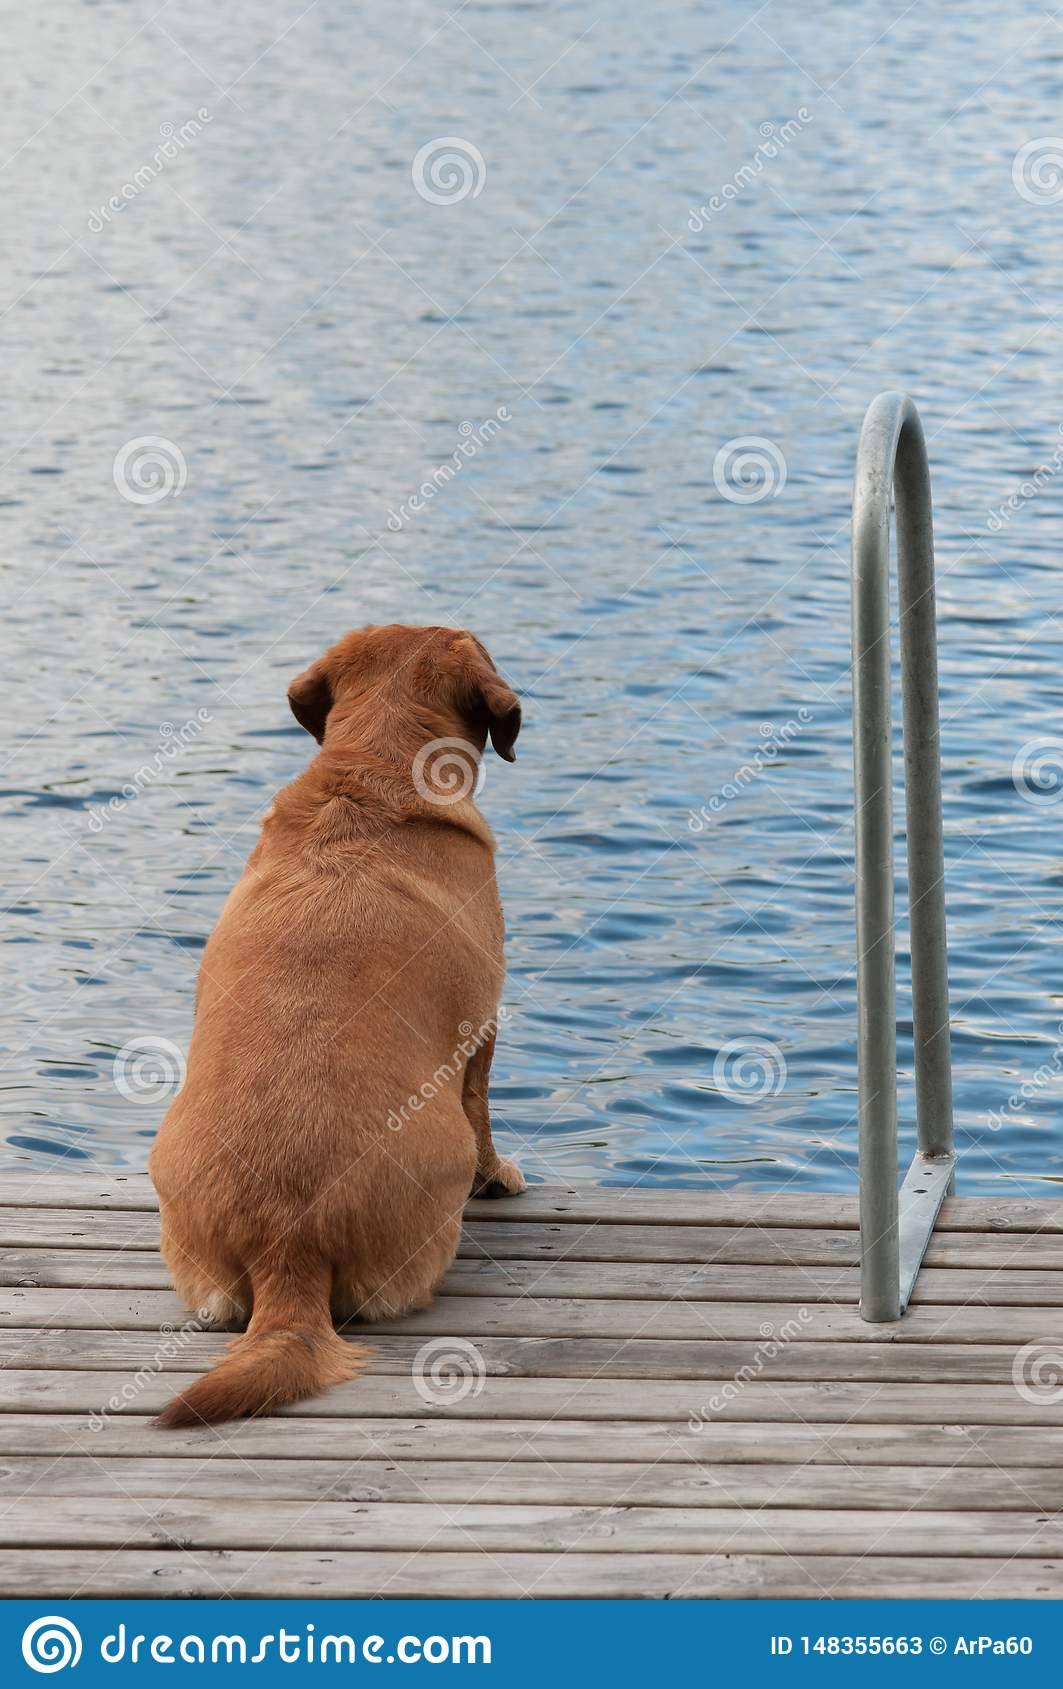 Dog is lonely and waiting her owner to come back.